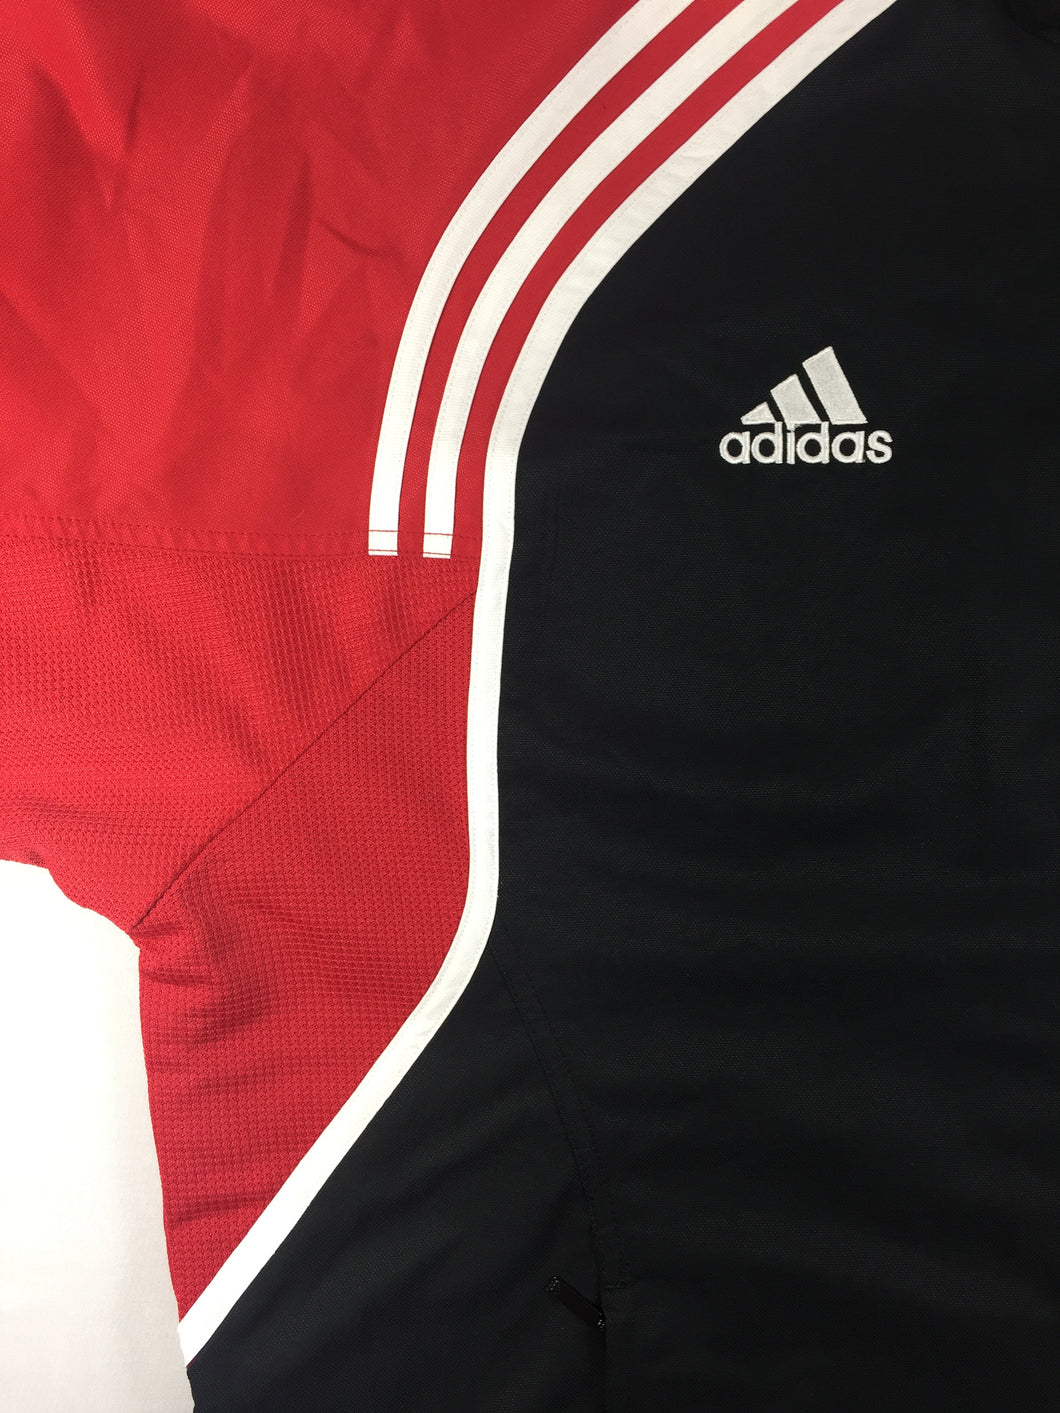 009c2c8932d1 Adidas Track Jacket Black Red White Large – The Modernist Clothing ...